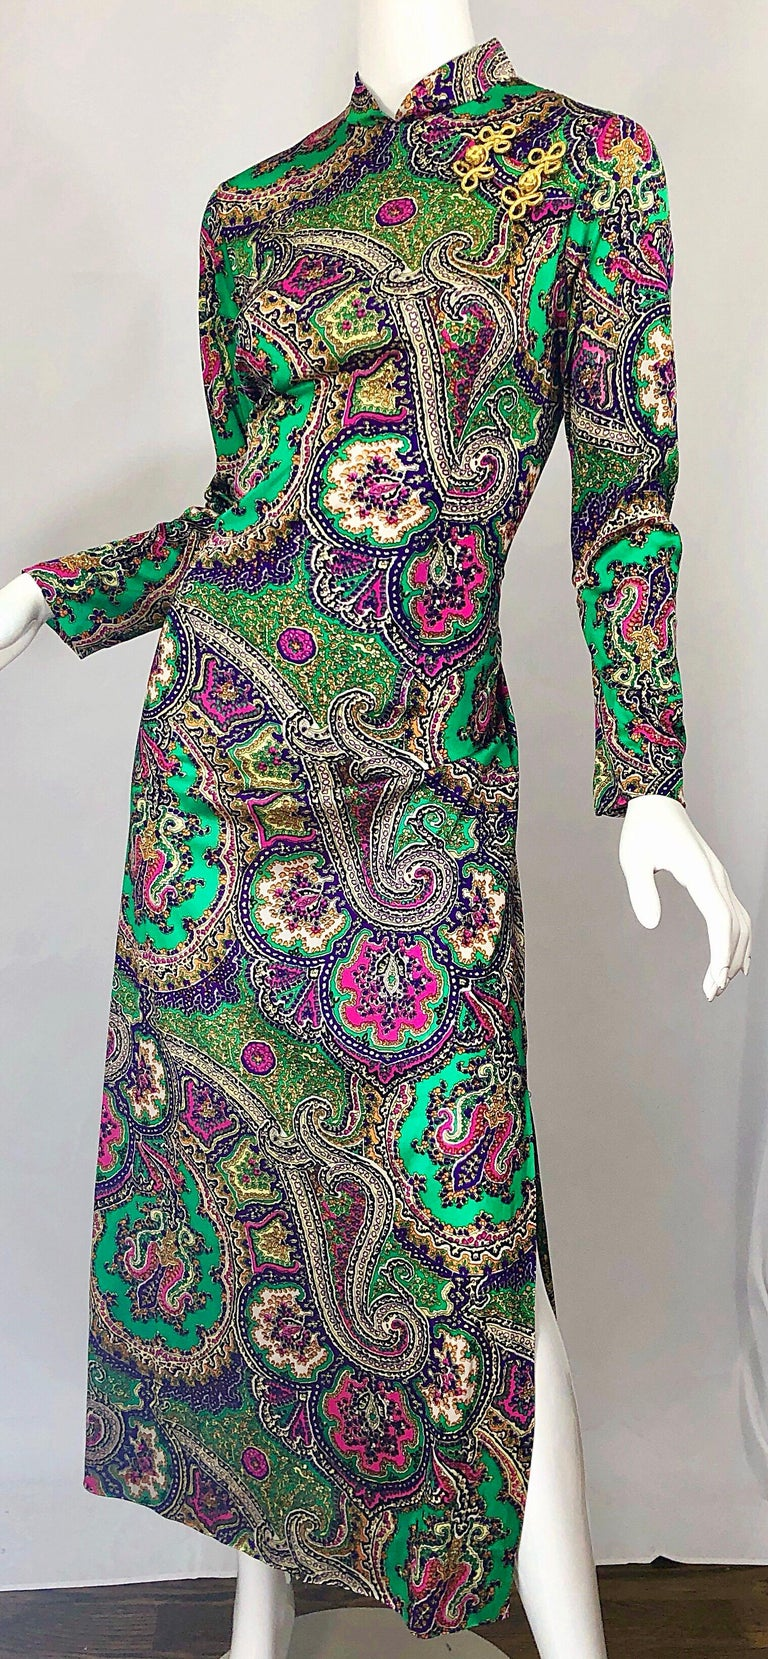 1970s Cheongsam Inspired Colorful Paisley Print Jersey Long Sleeve Maxi Dress For Sale 8